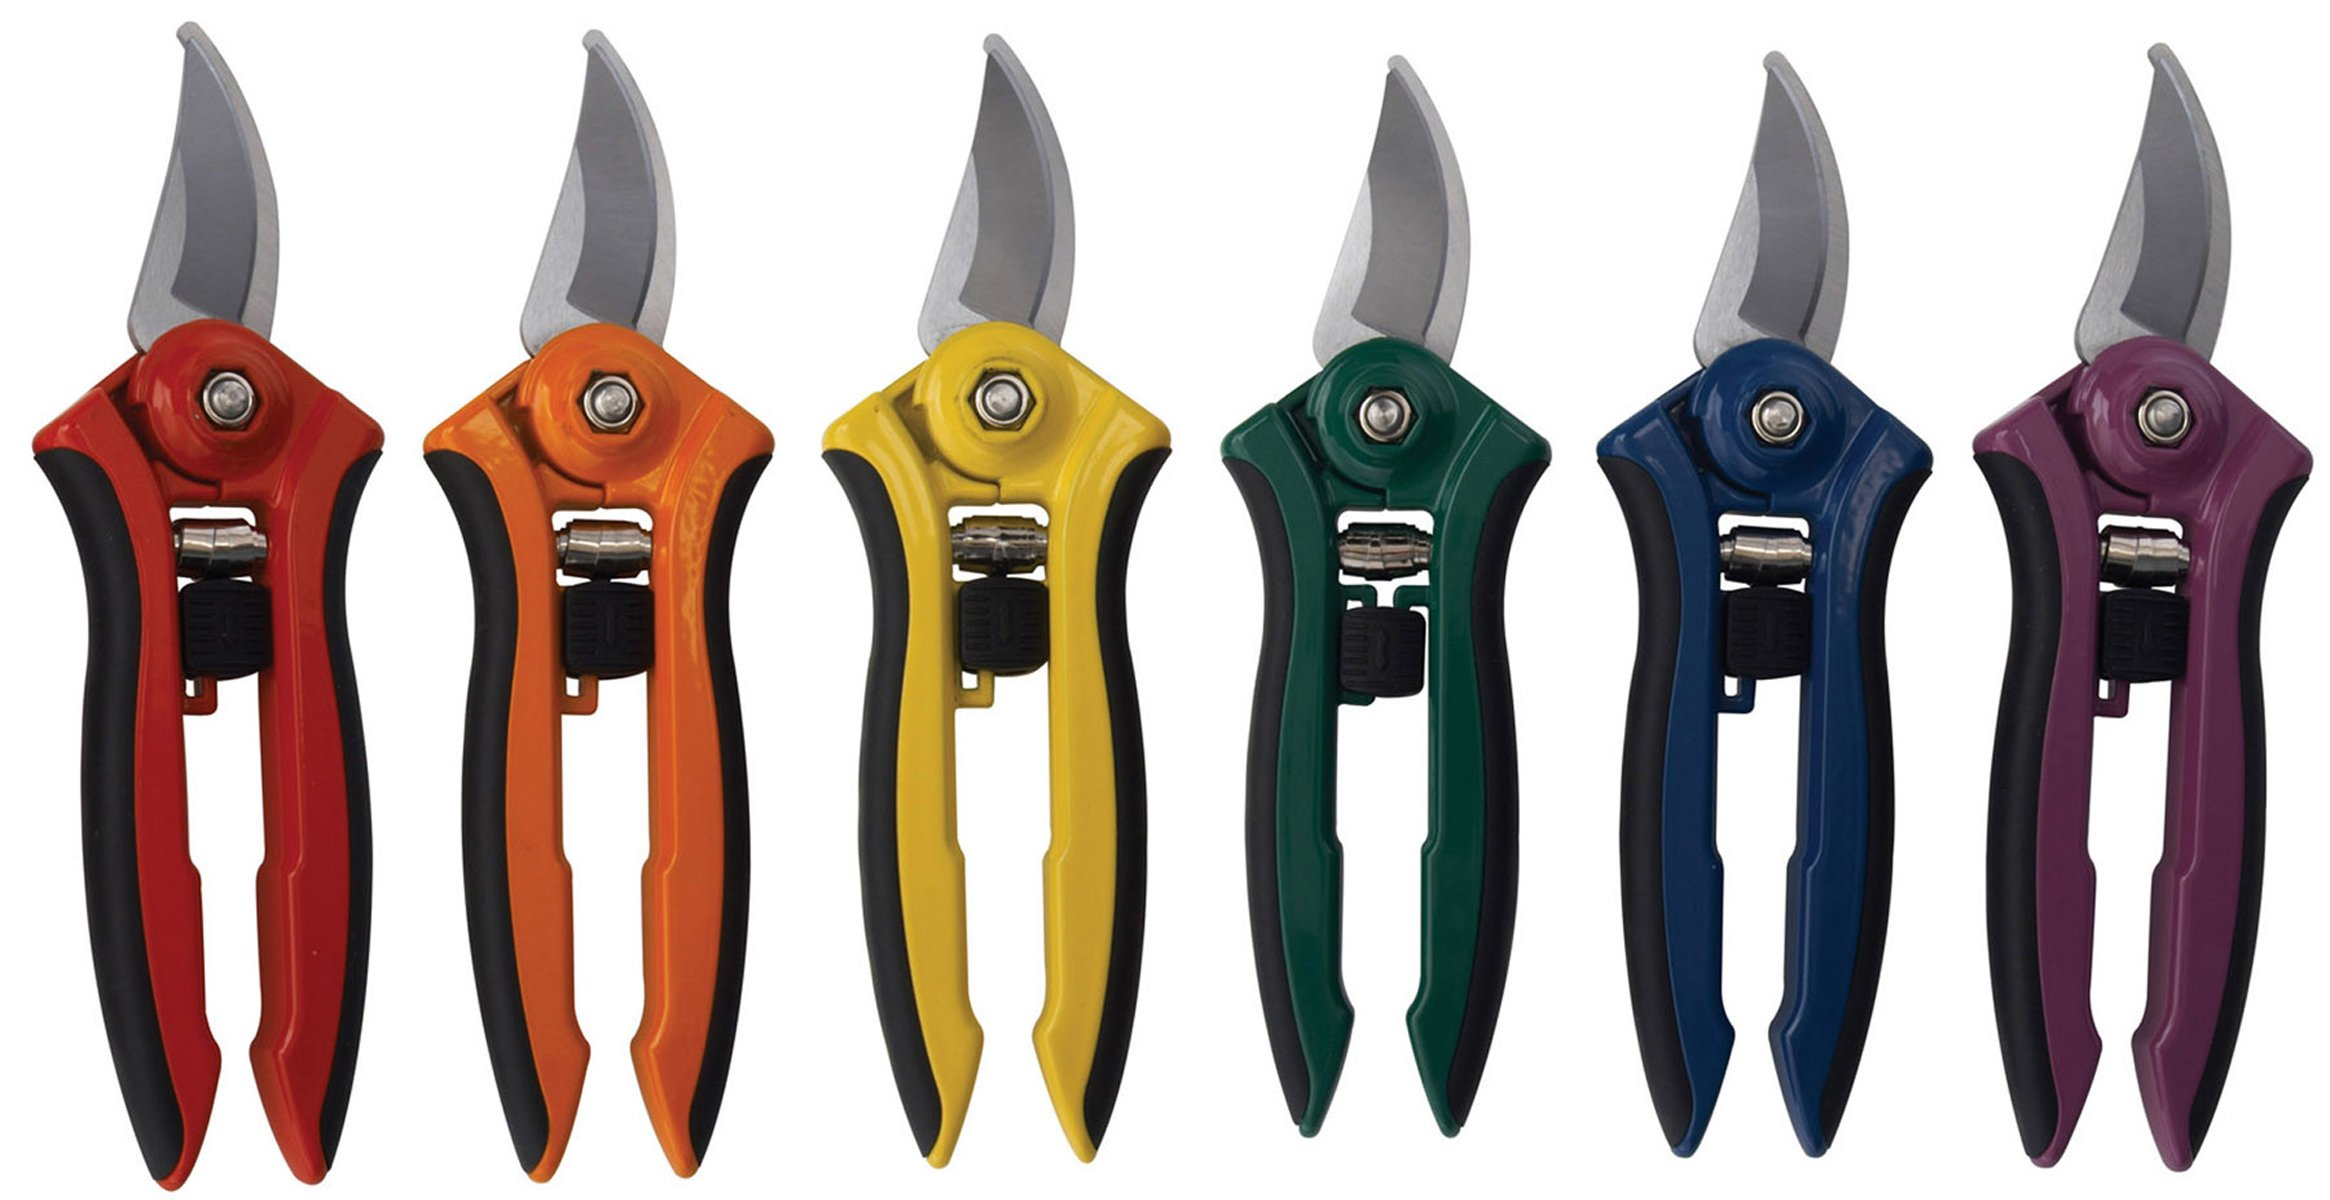 The Classic Set 12 of Bypass Pruner